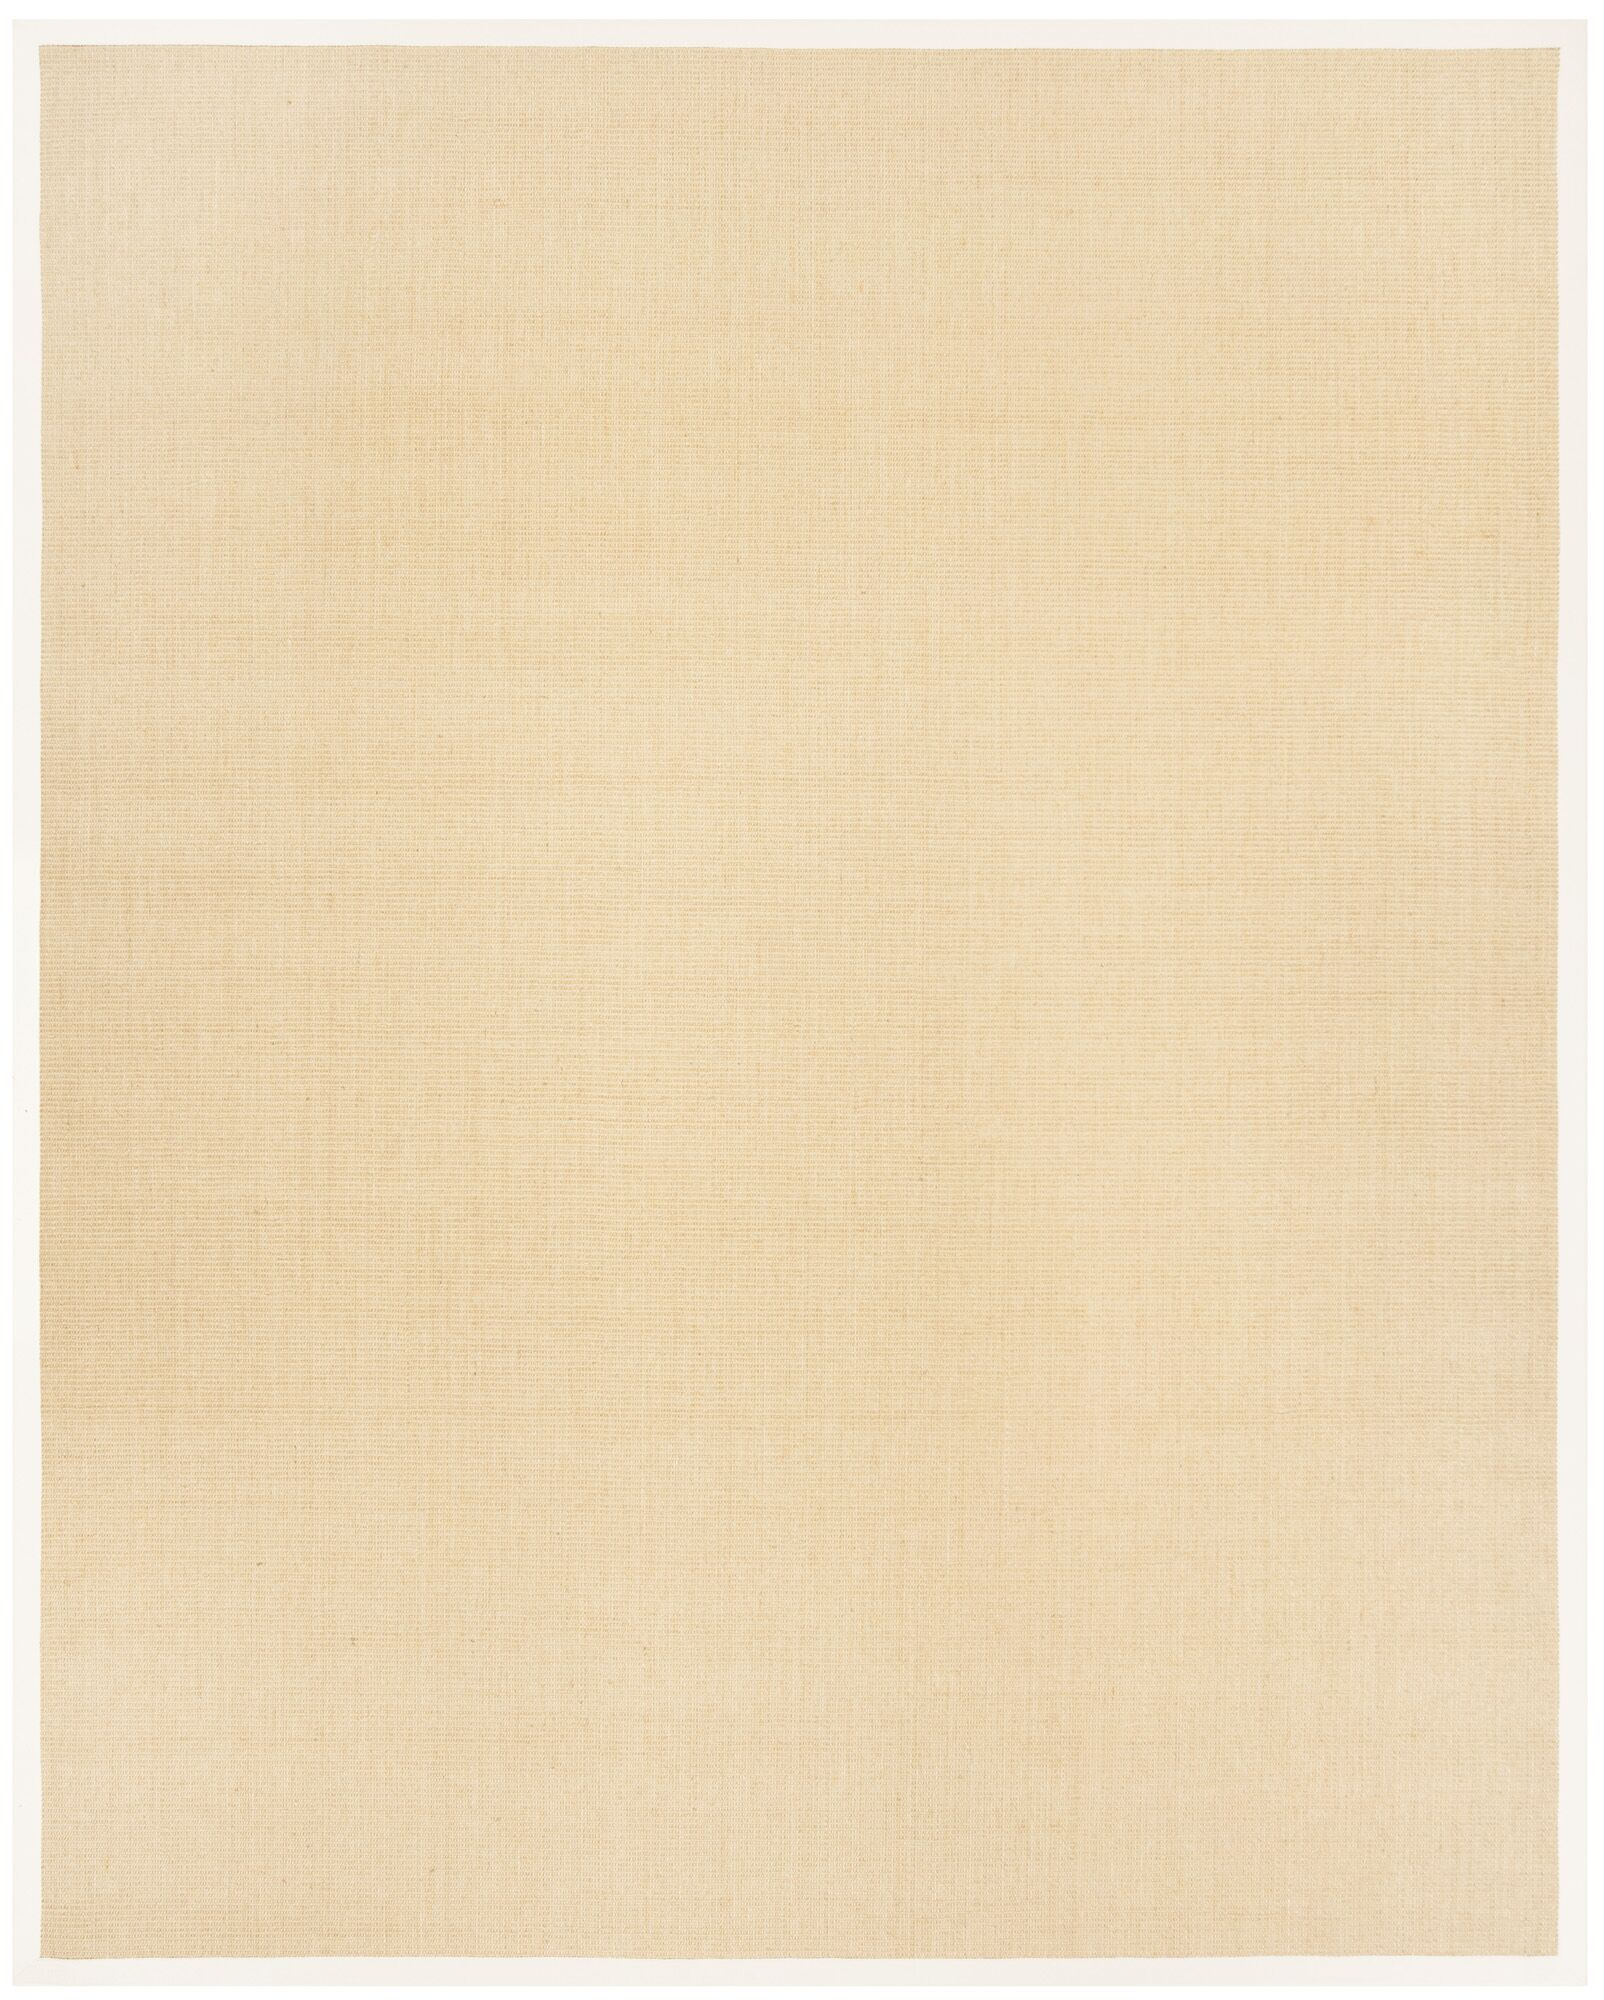 Boxrah Beige Area Rug Rug Size: Rectangle 8' x 10'